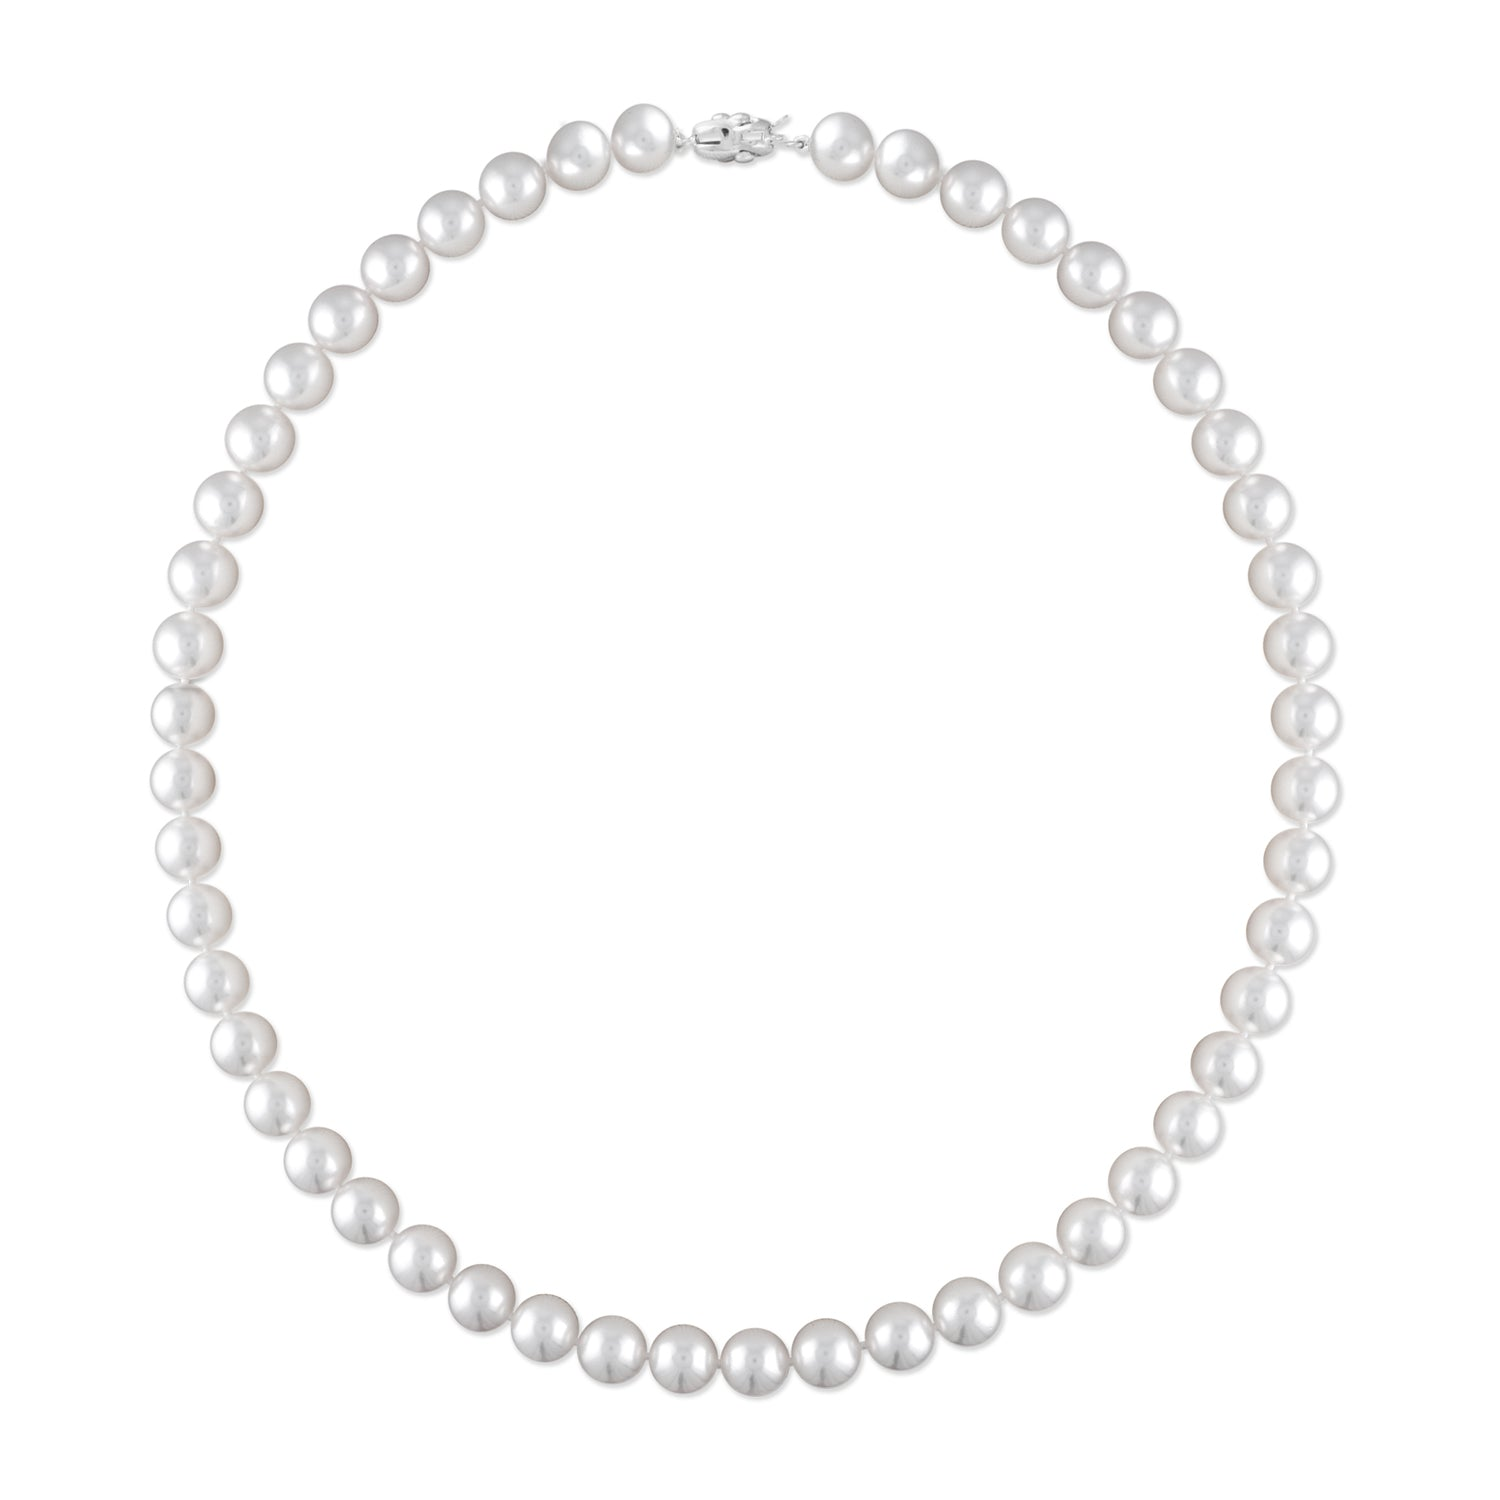 14k 6.5-7.0mm Akoya Cultured Pearl Necklace